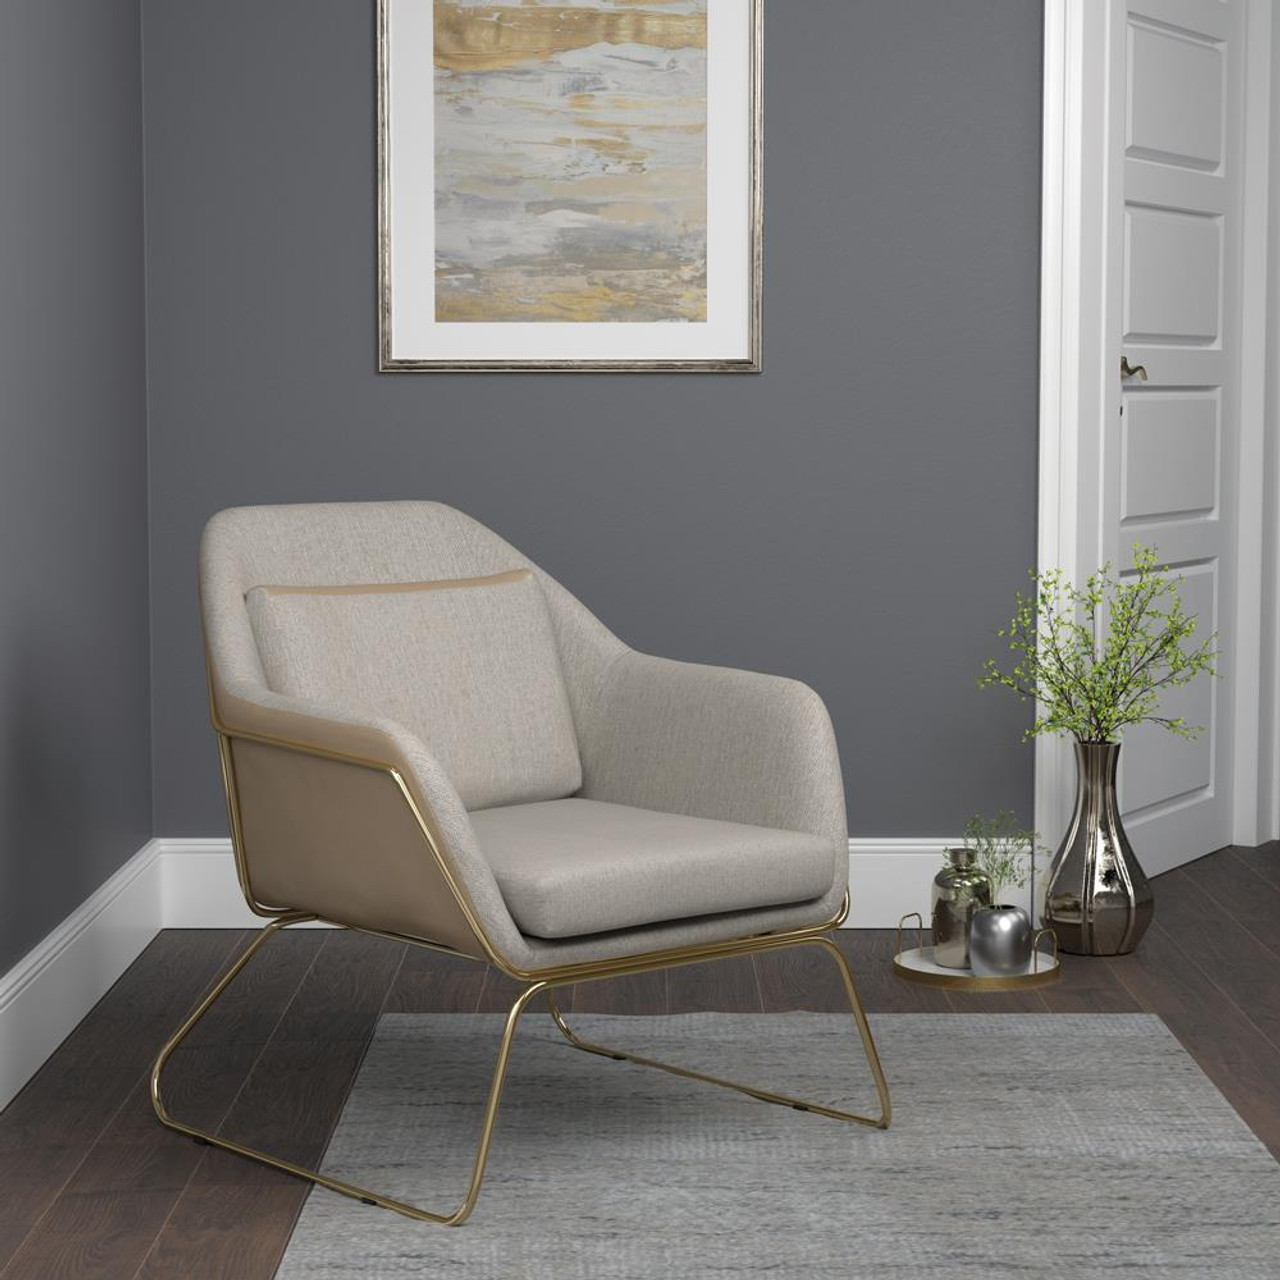 Coaster Beige Metal Sled Leg Accent Chair Beige 903981 On Sale At Spokane Furniture Company Serving Spokane Post Falls Coeur D Alene Wa Spokane Valley Post Falls And Coeur D Alene Id